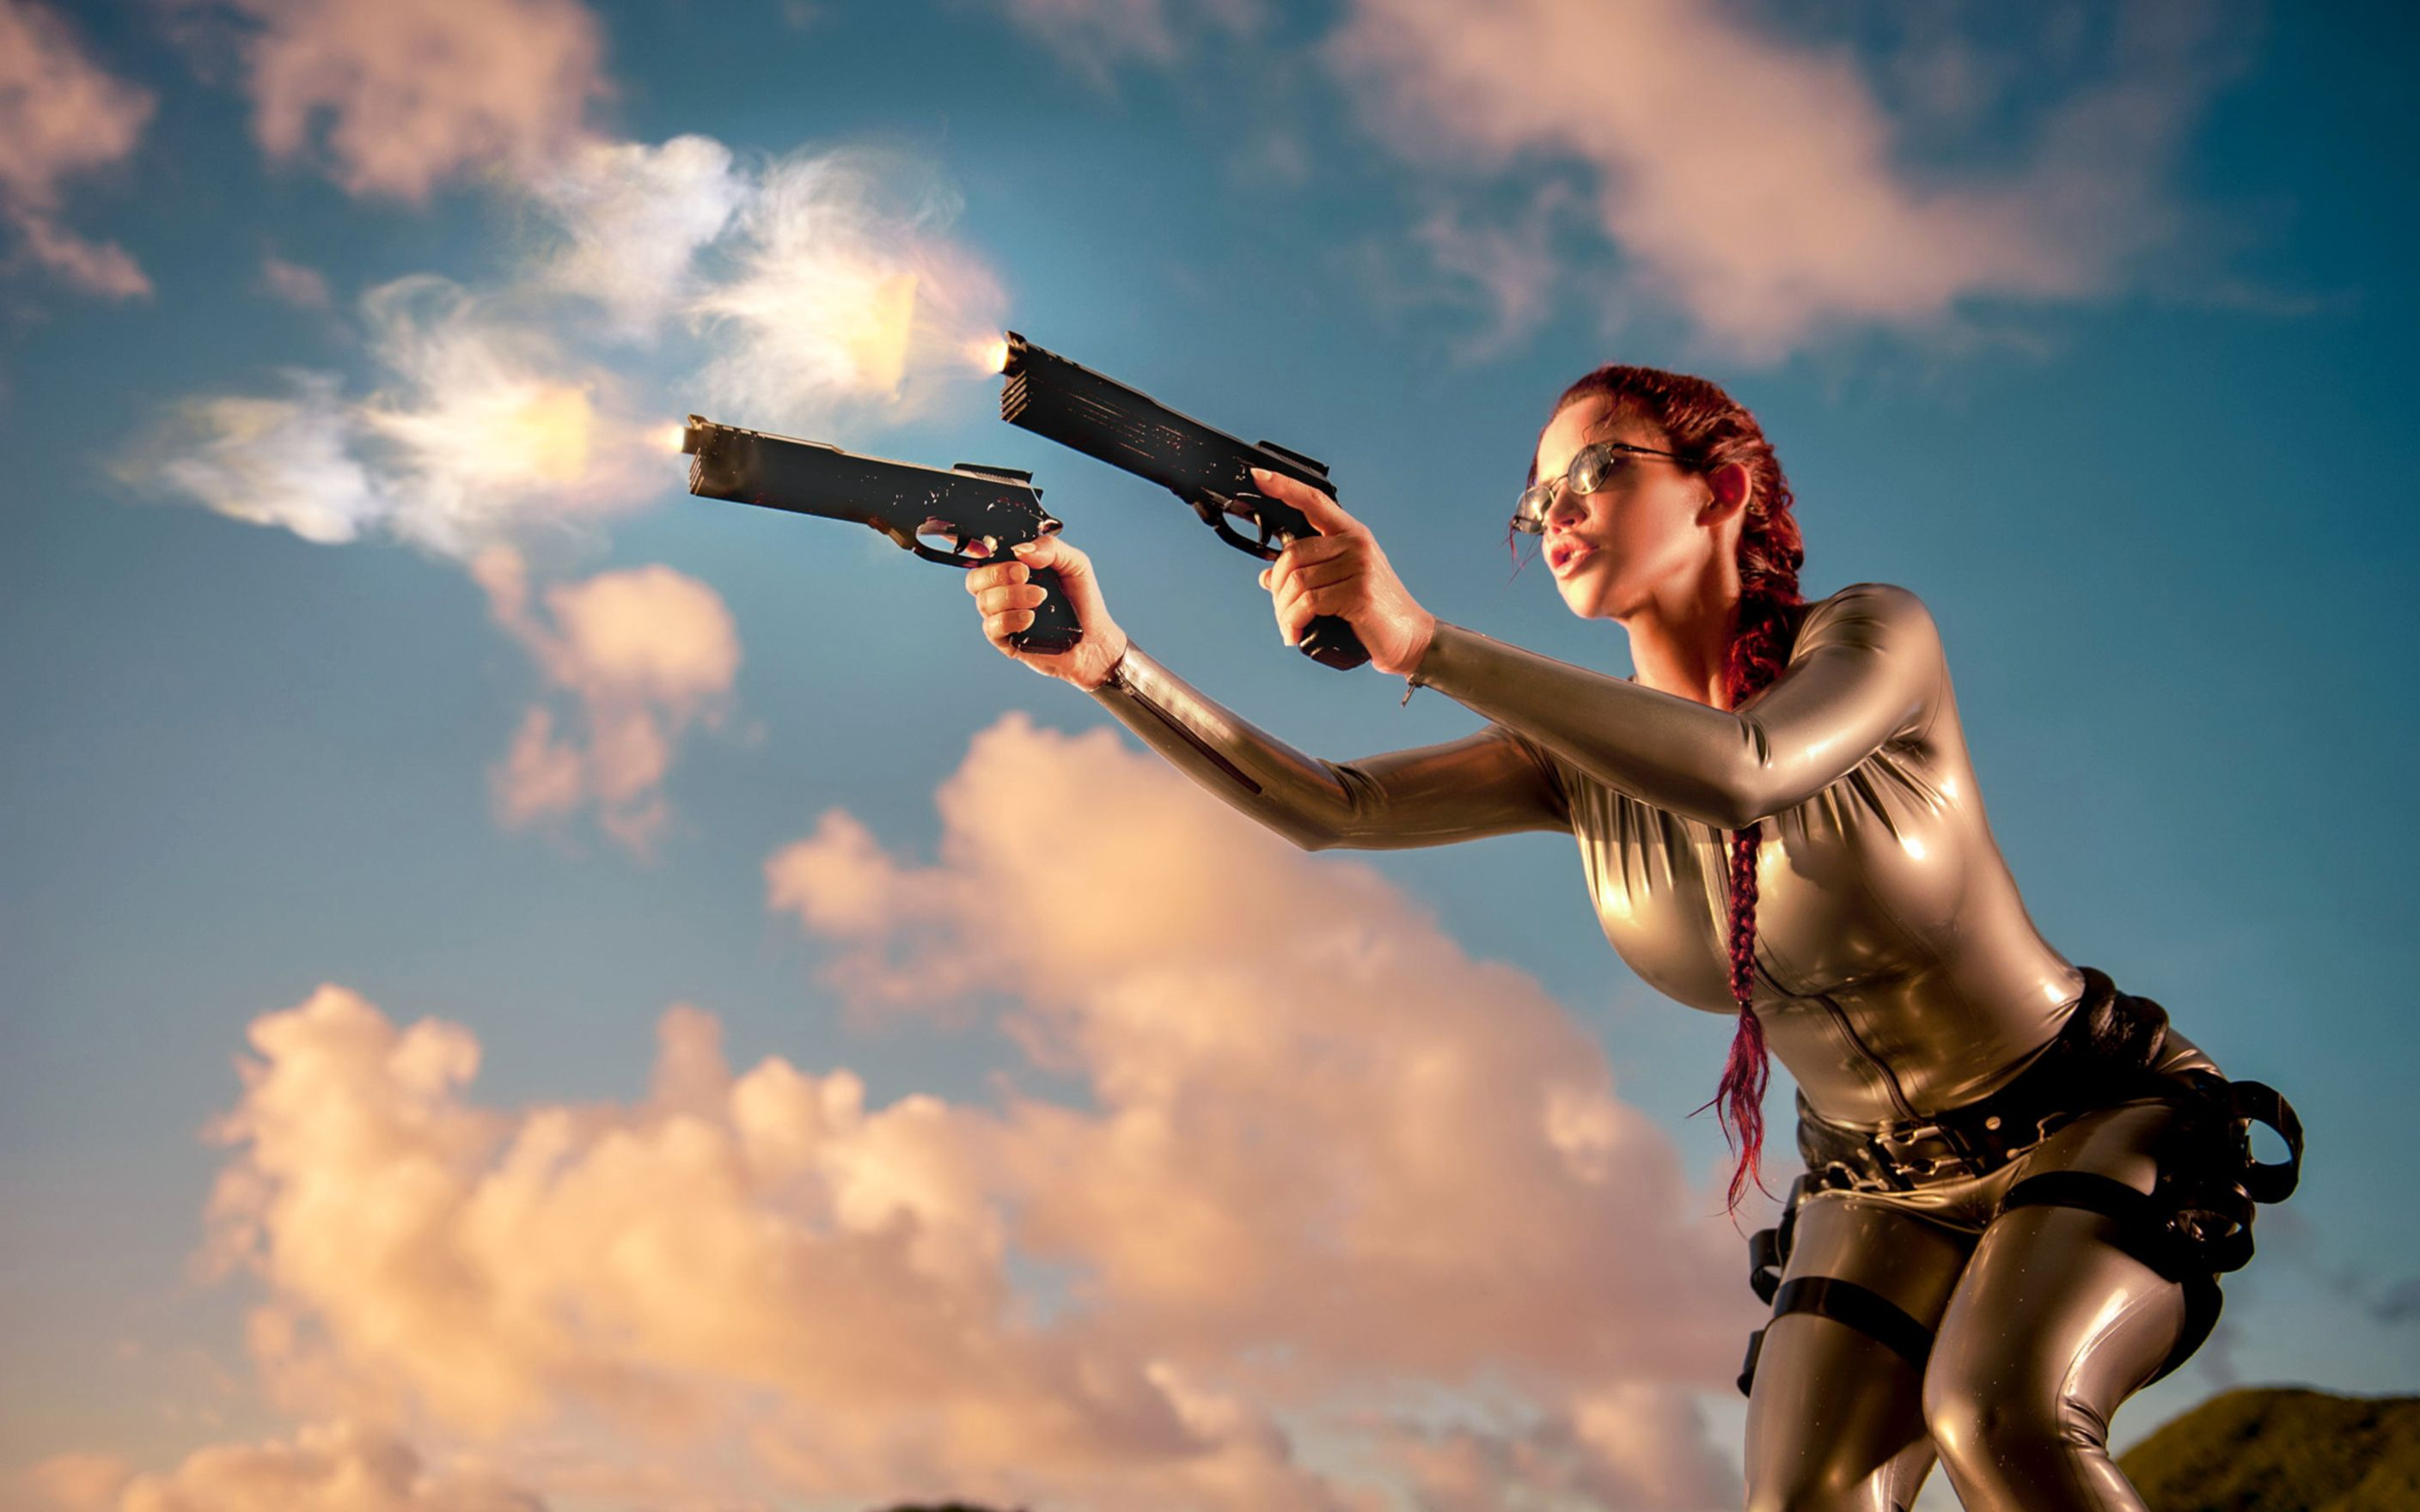 Download free HD Lara Croft Cosplay Wide Wallpaper, image